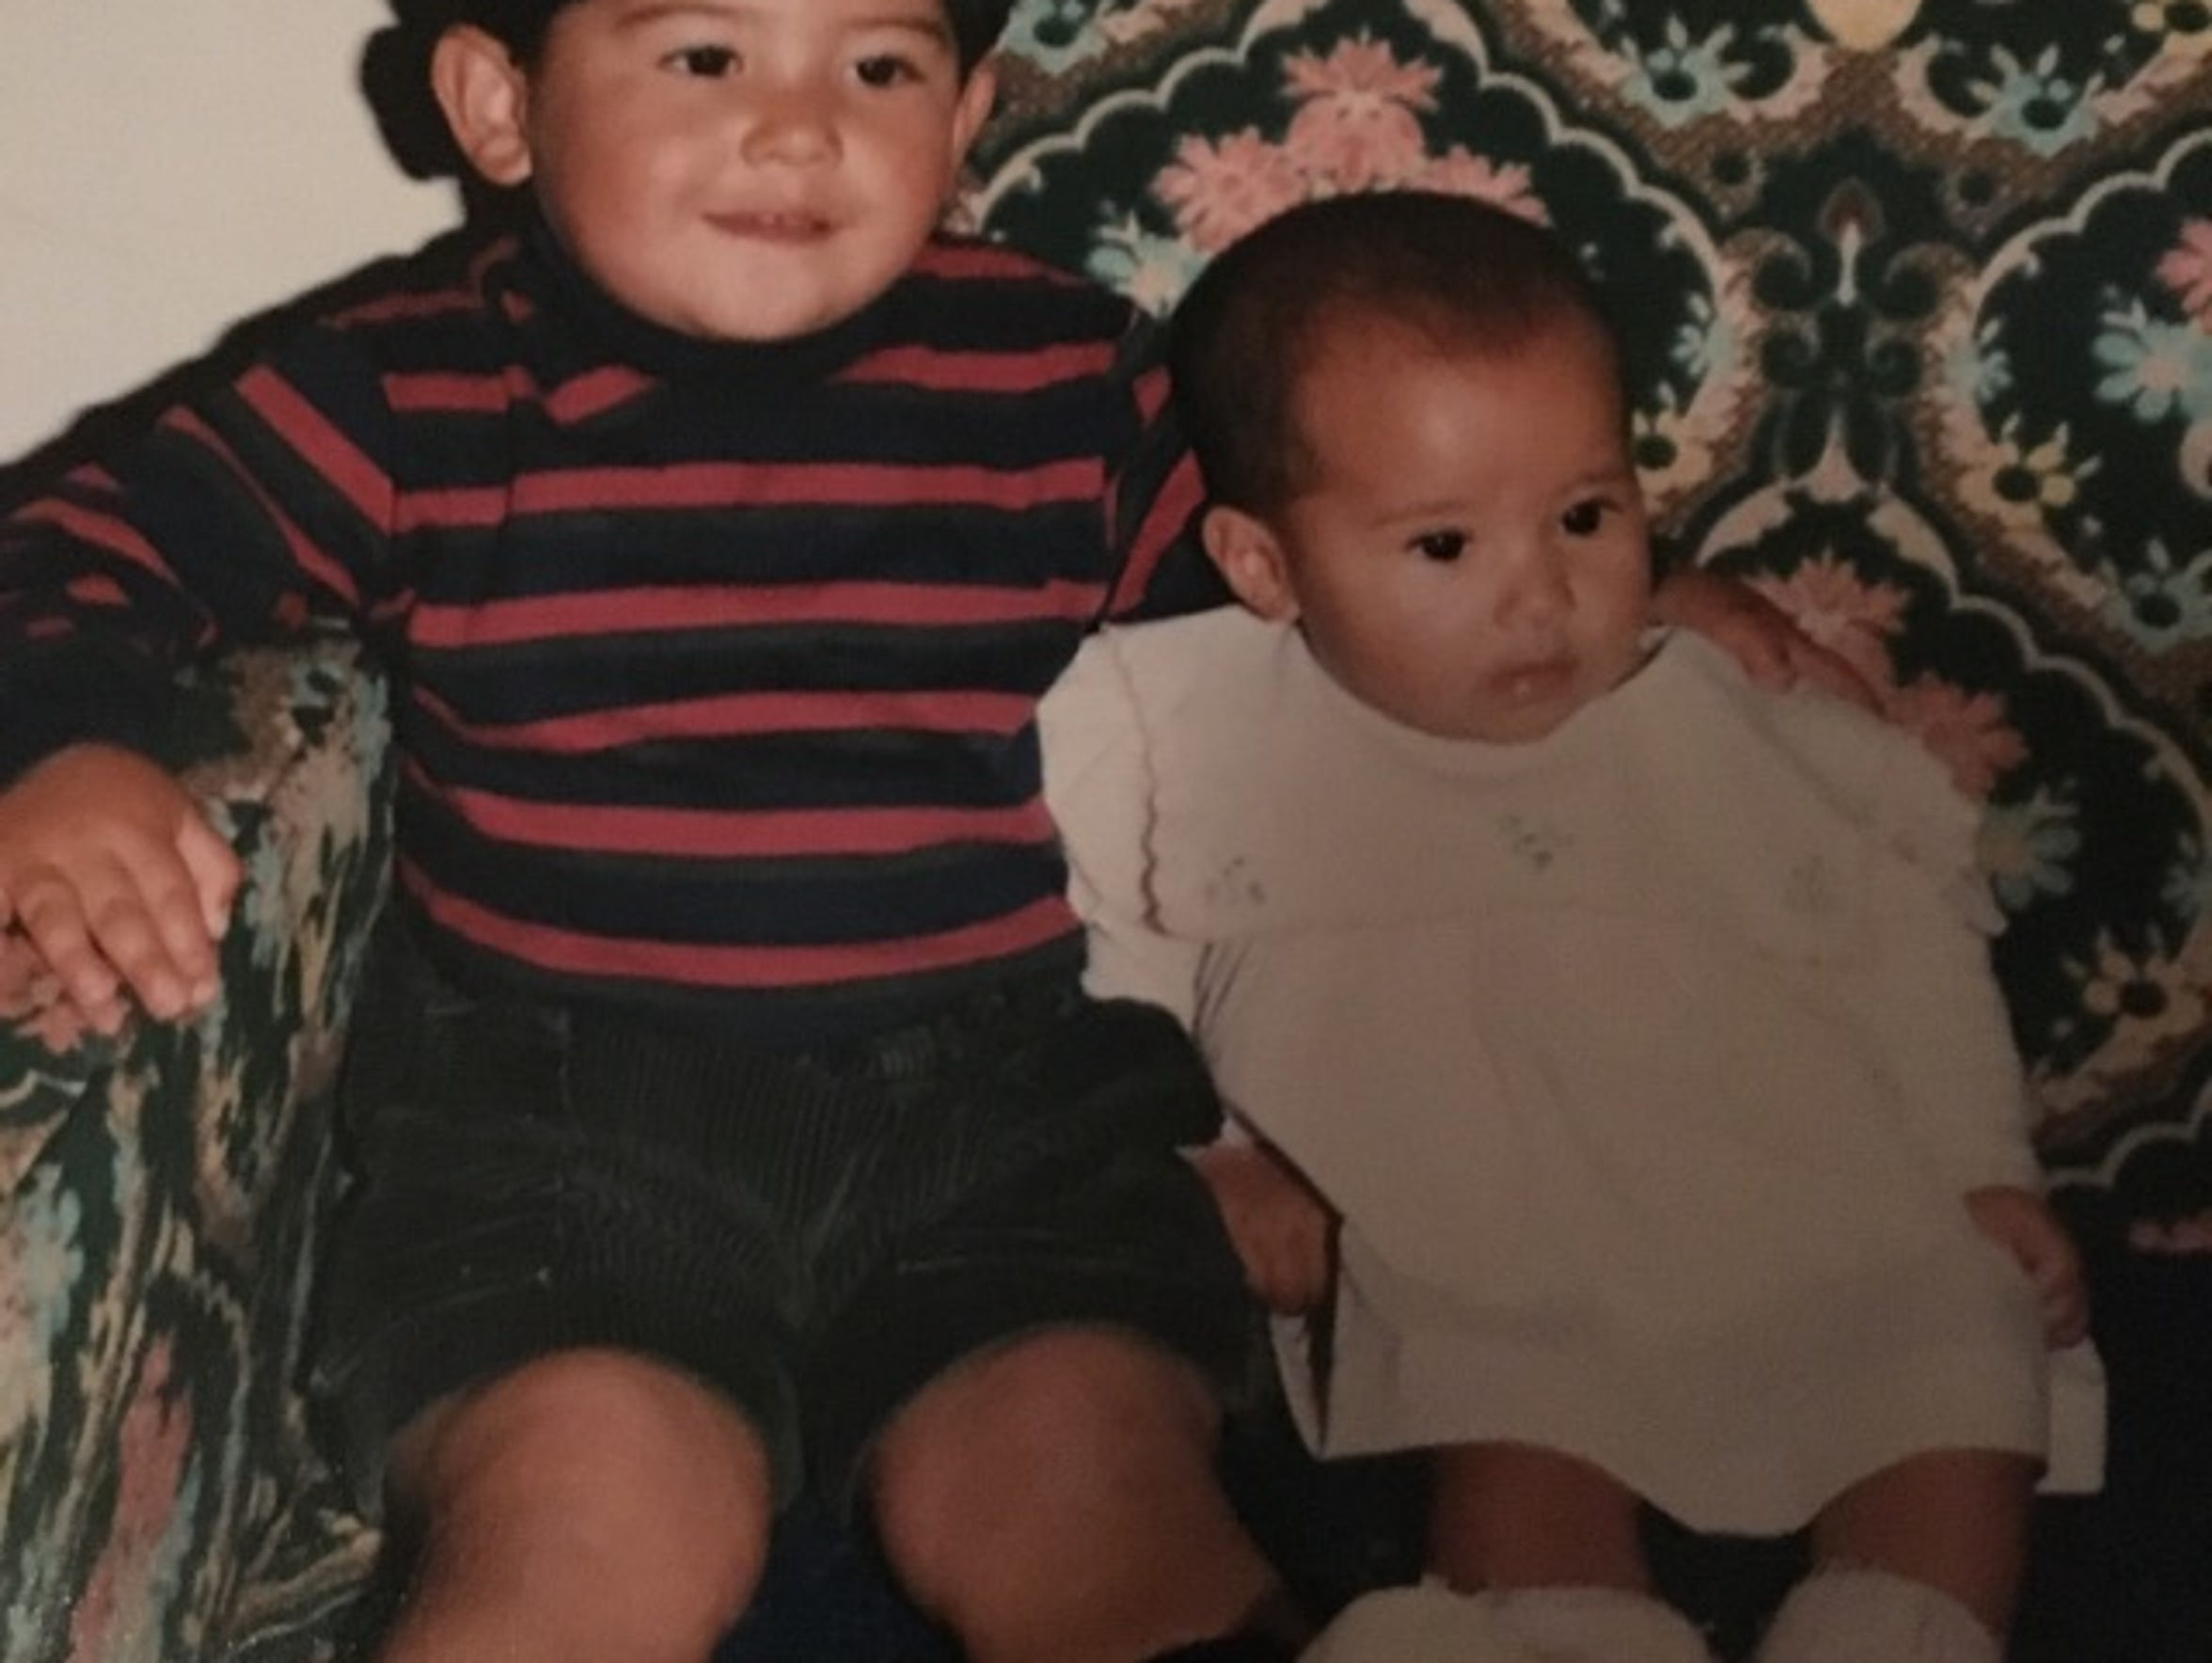 The Rodriguez siblings have learned to lean heavily